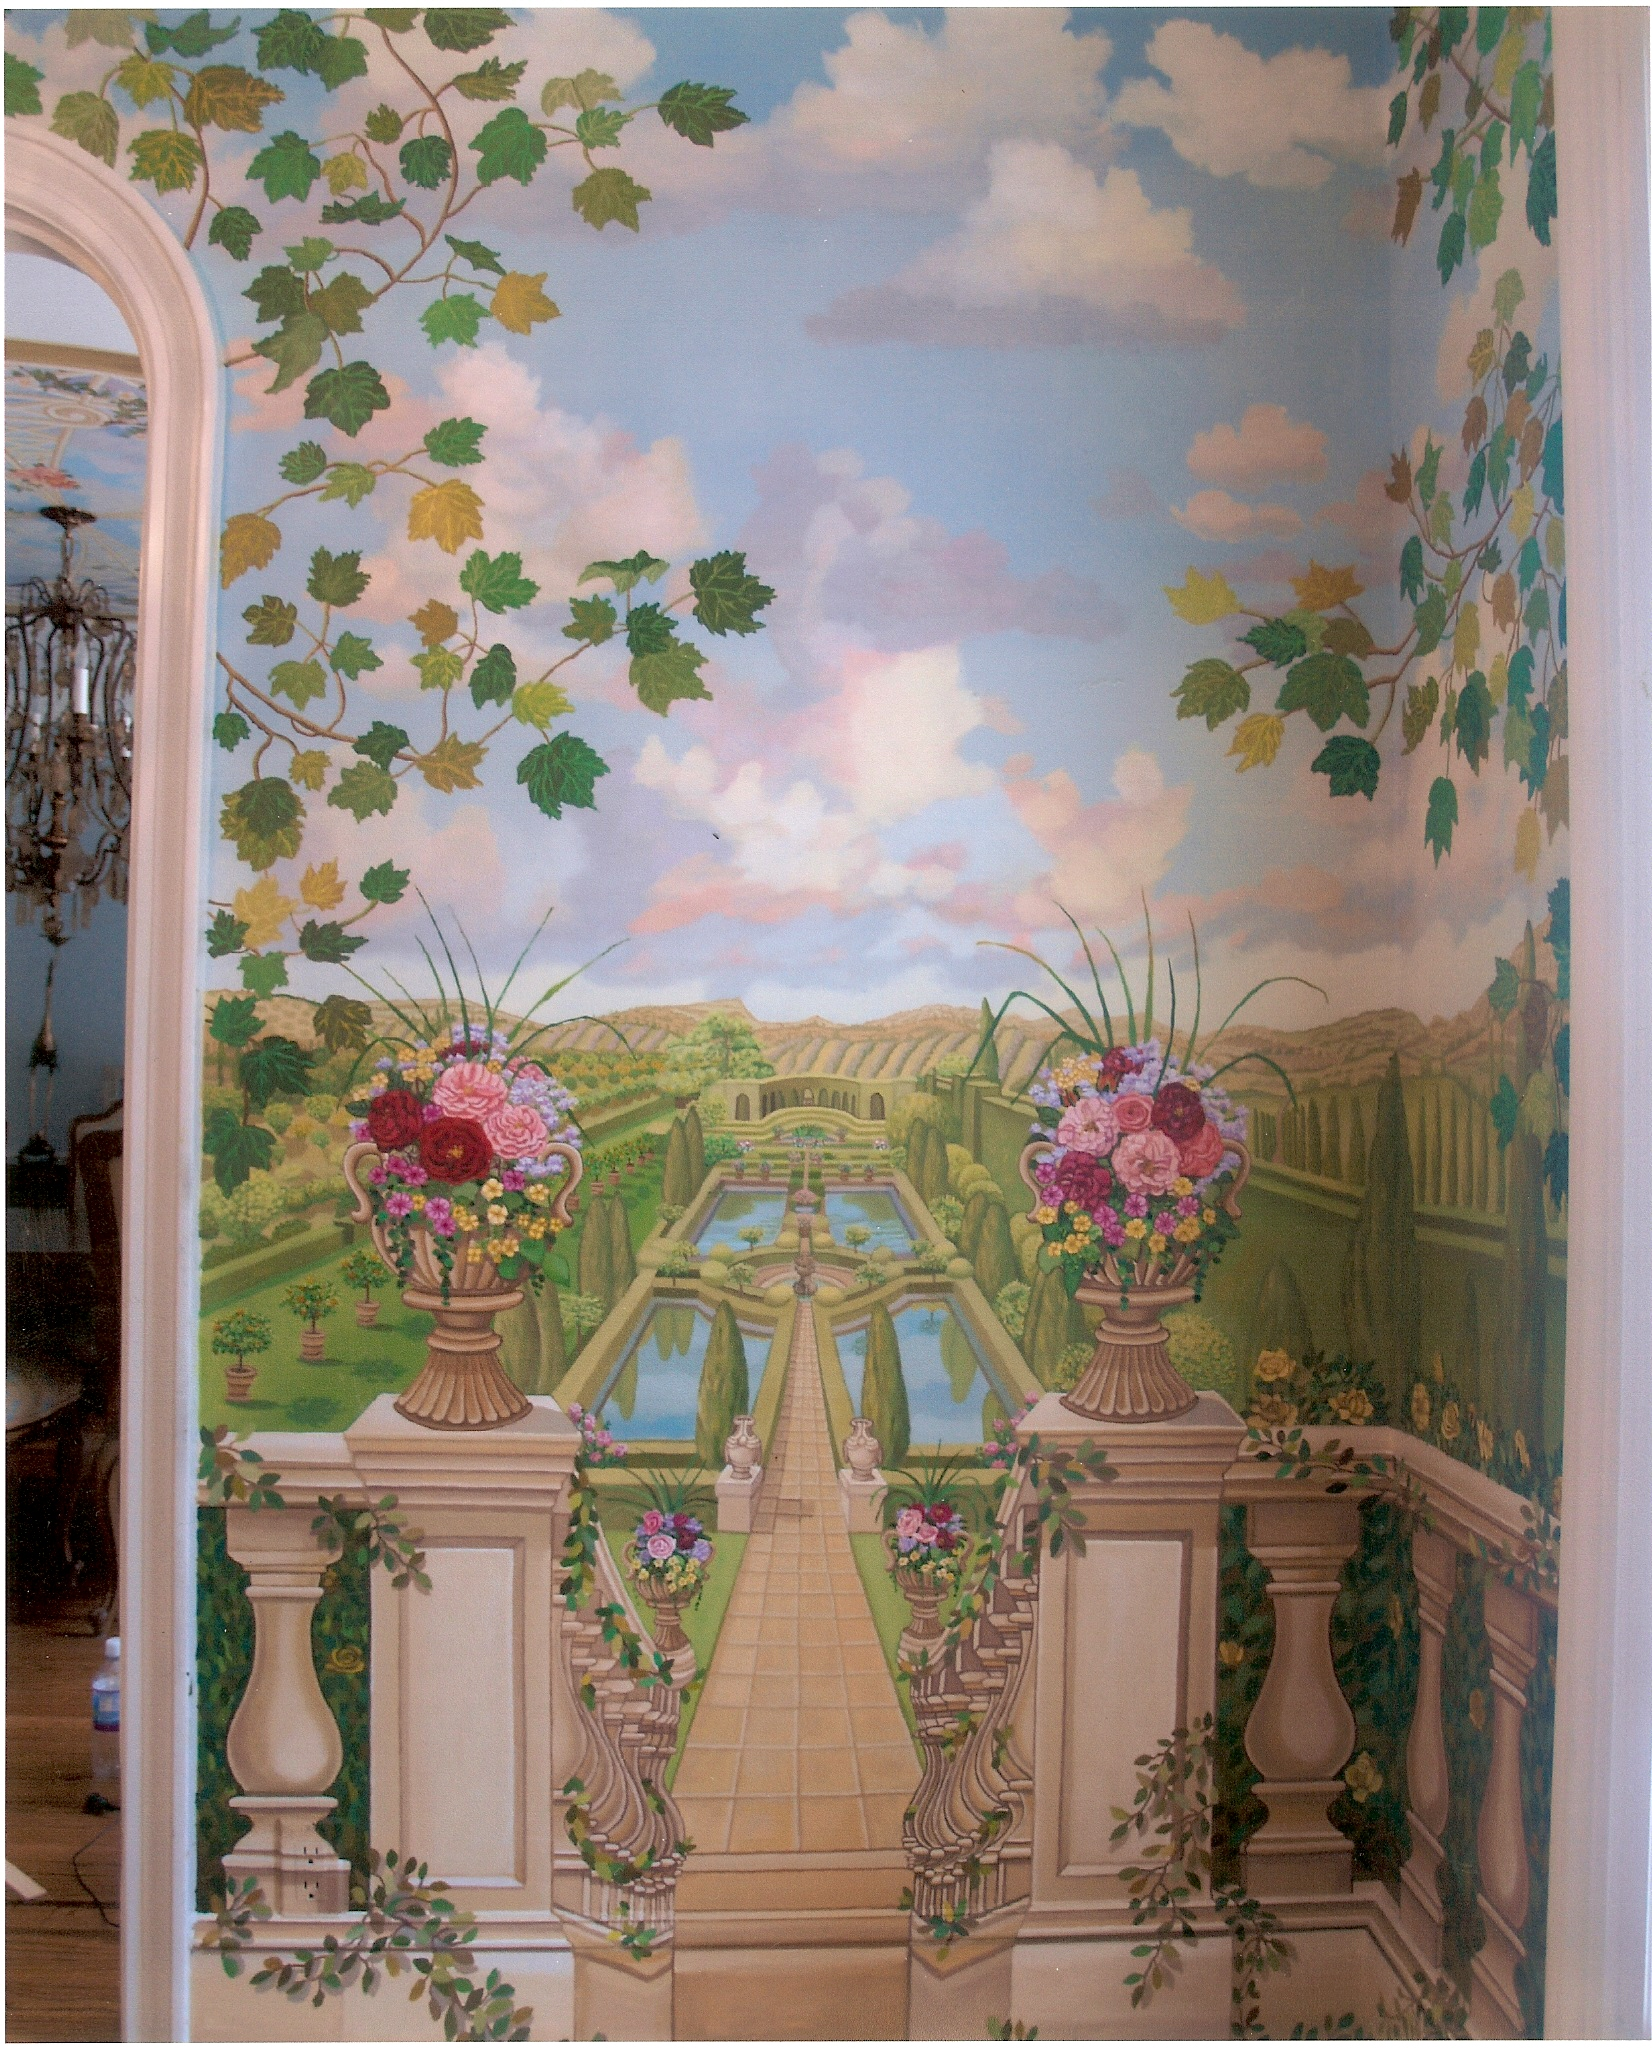 New York Wall Murals For Bedrooms Bonnie Siracusa Murals Amp Fine Art